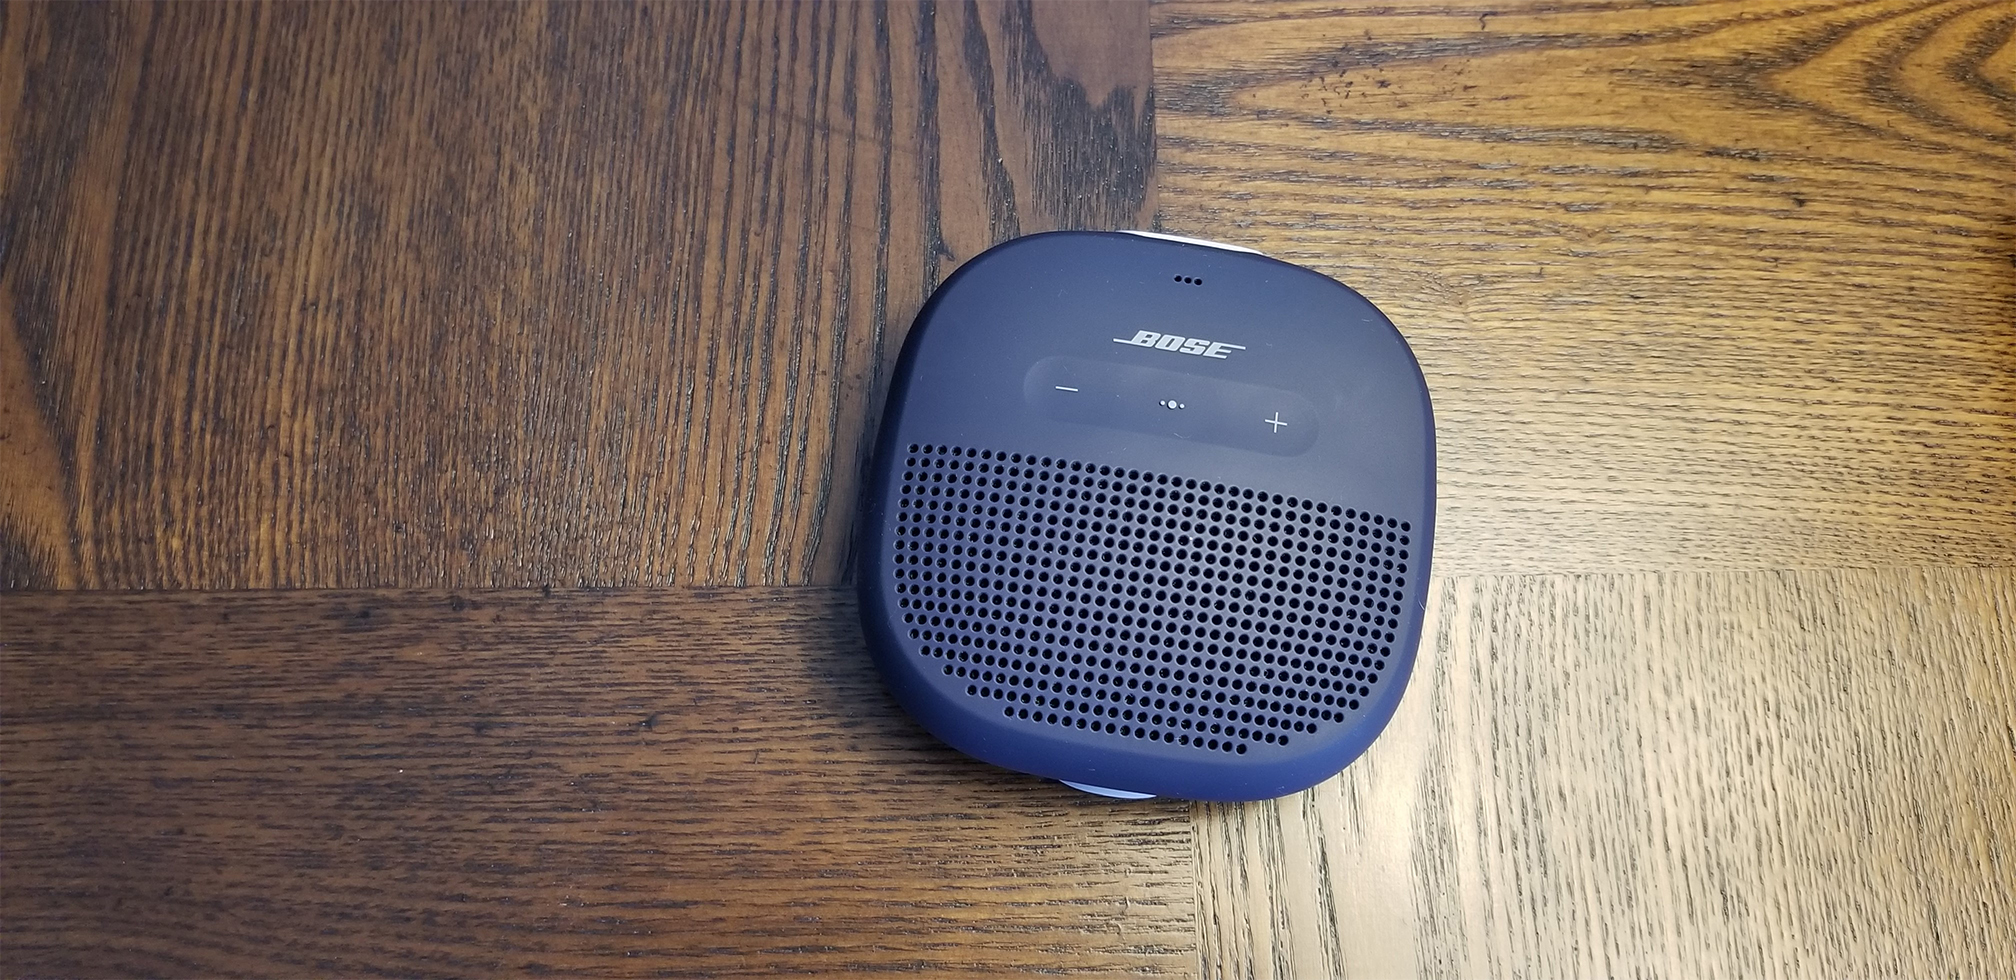 Bose SoundLink Micro Bluetooth Speaker Review | Stimulated